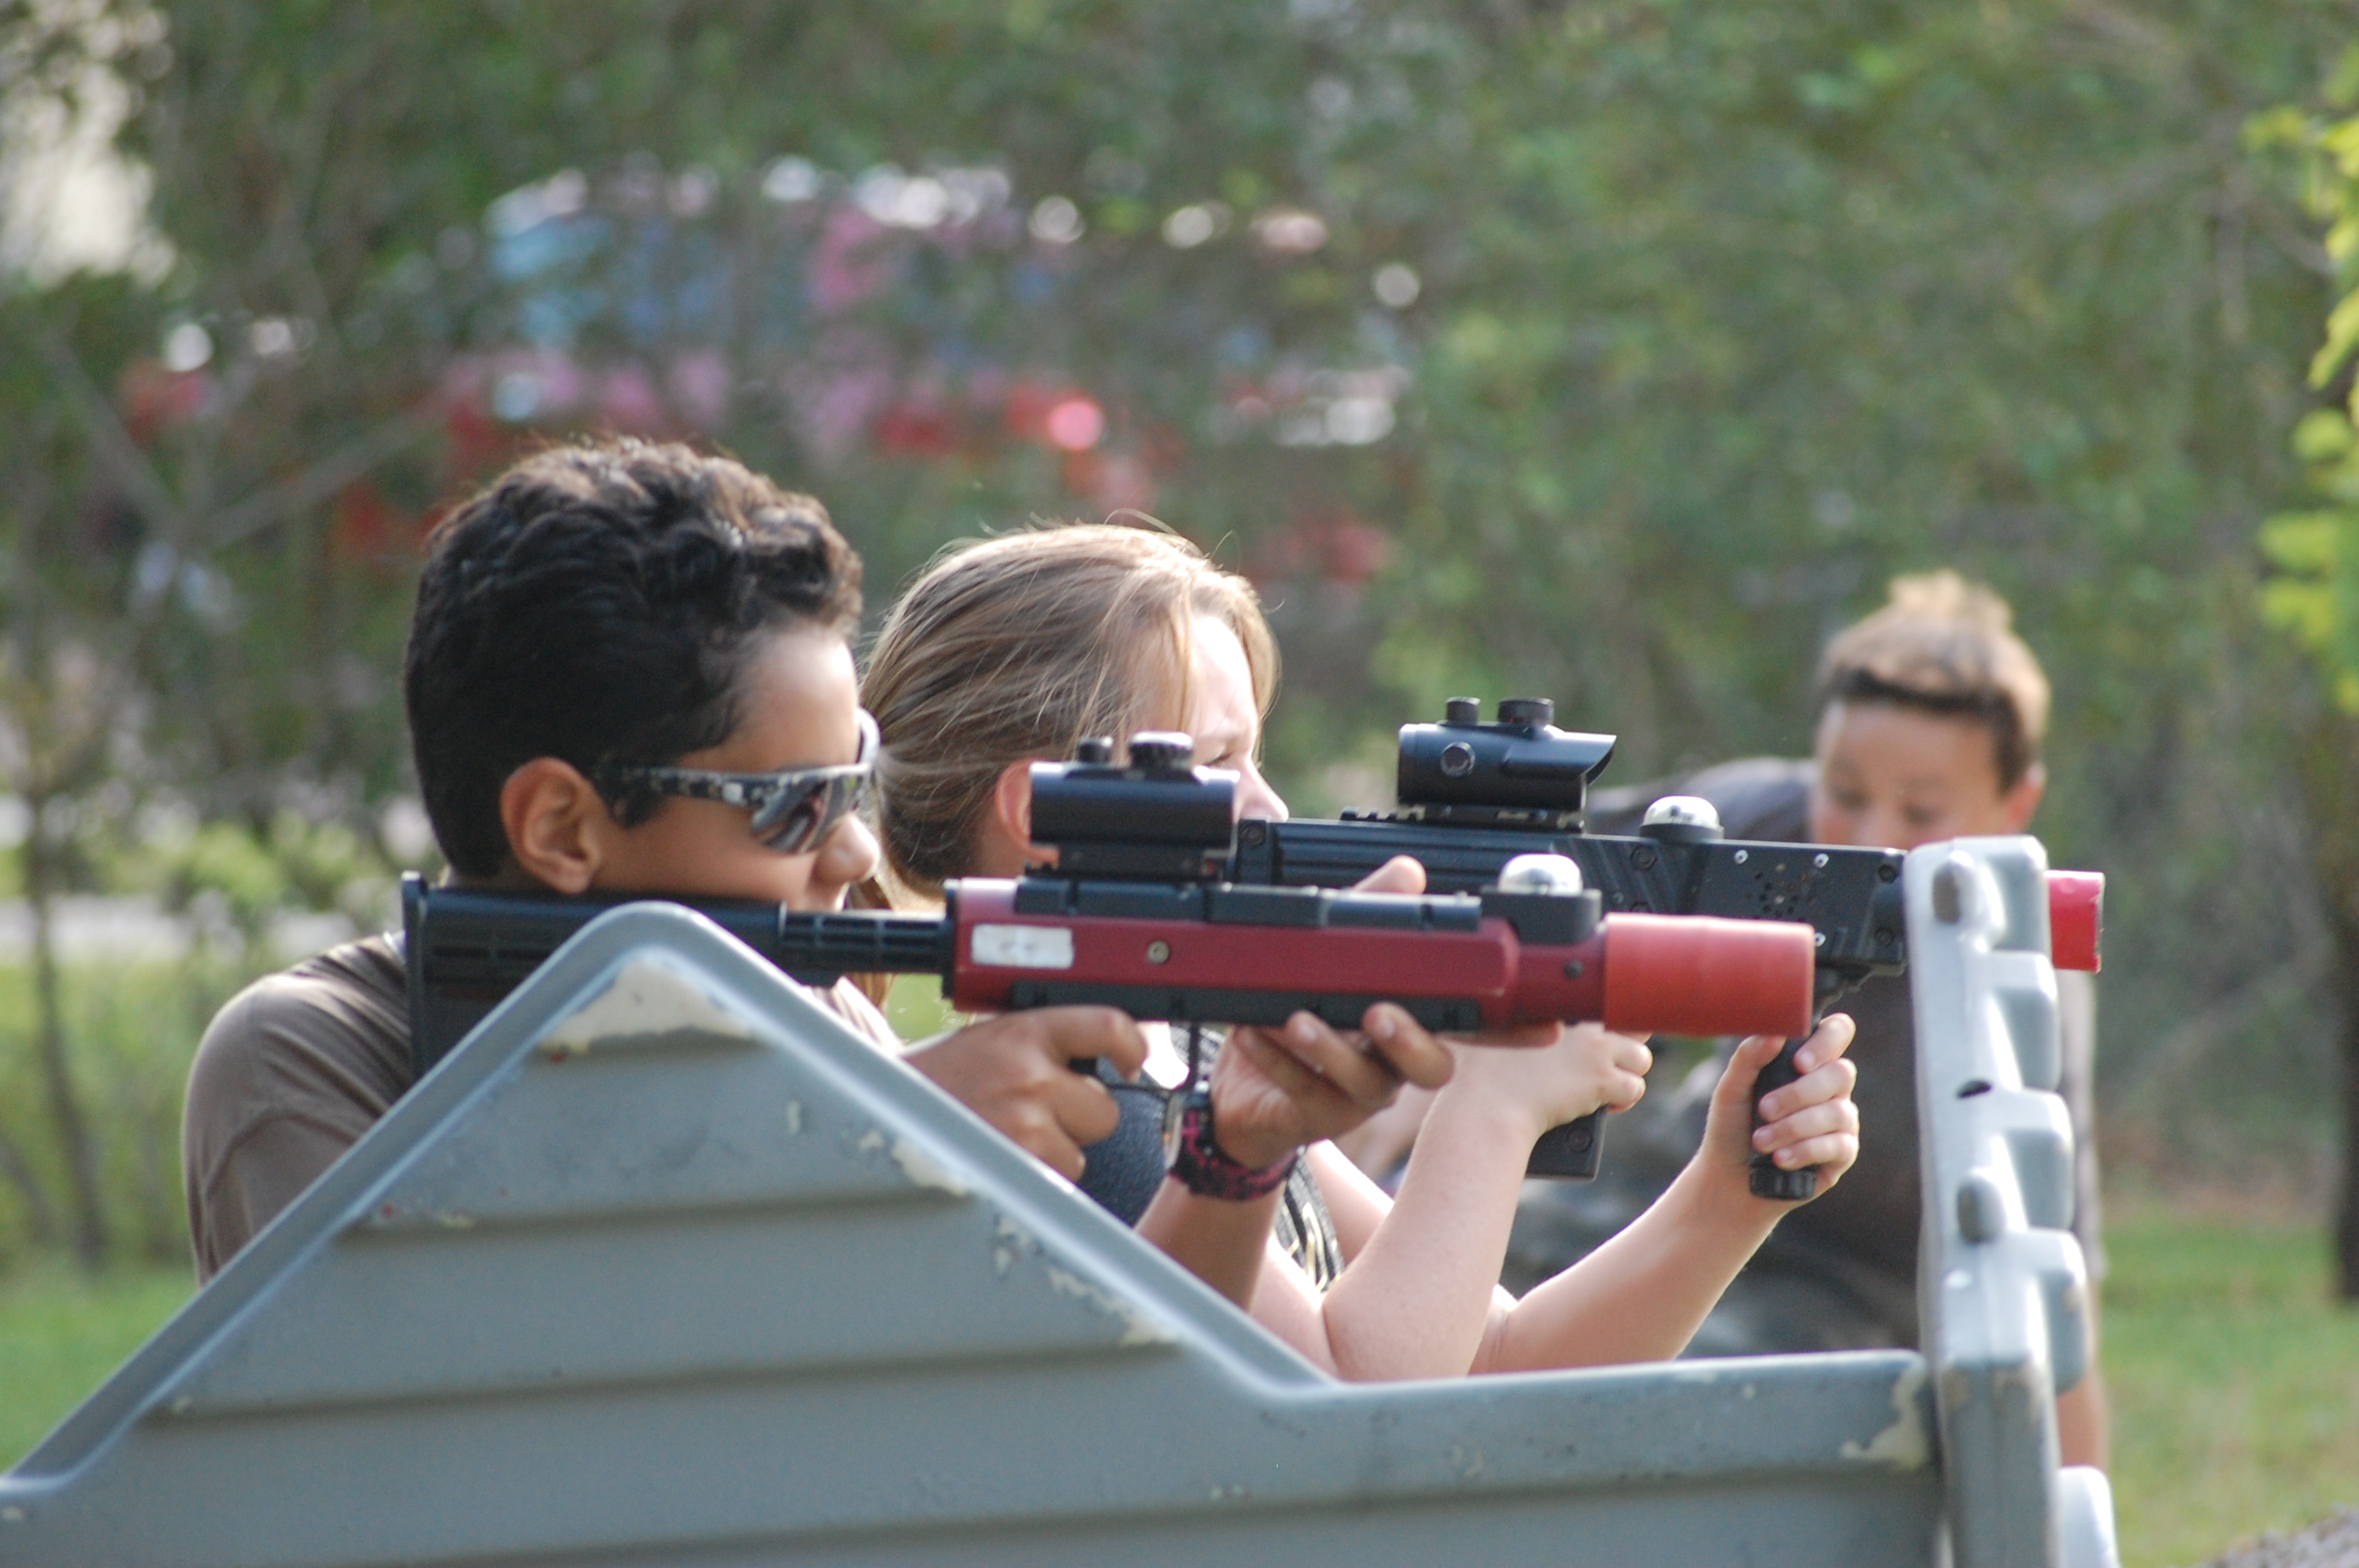 Mobile Laser Tag in Parrish,FL